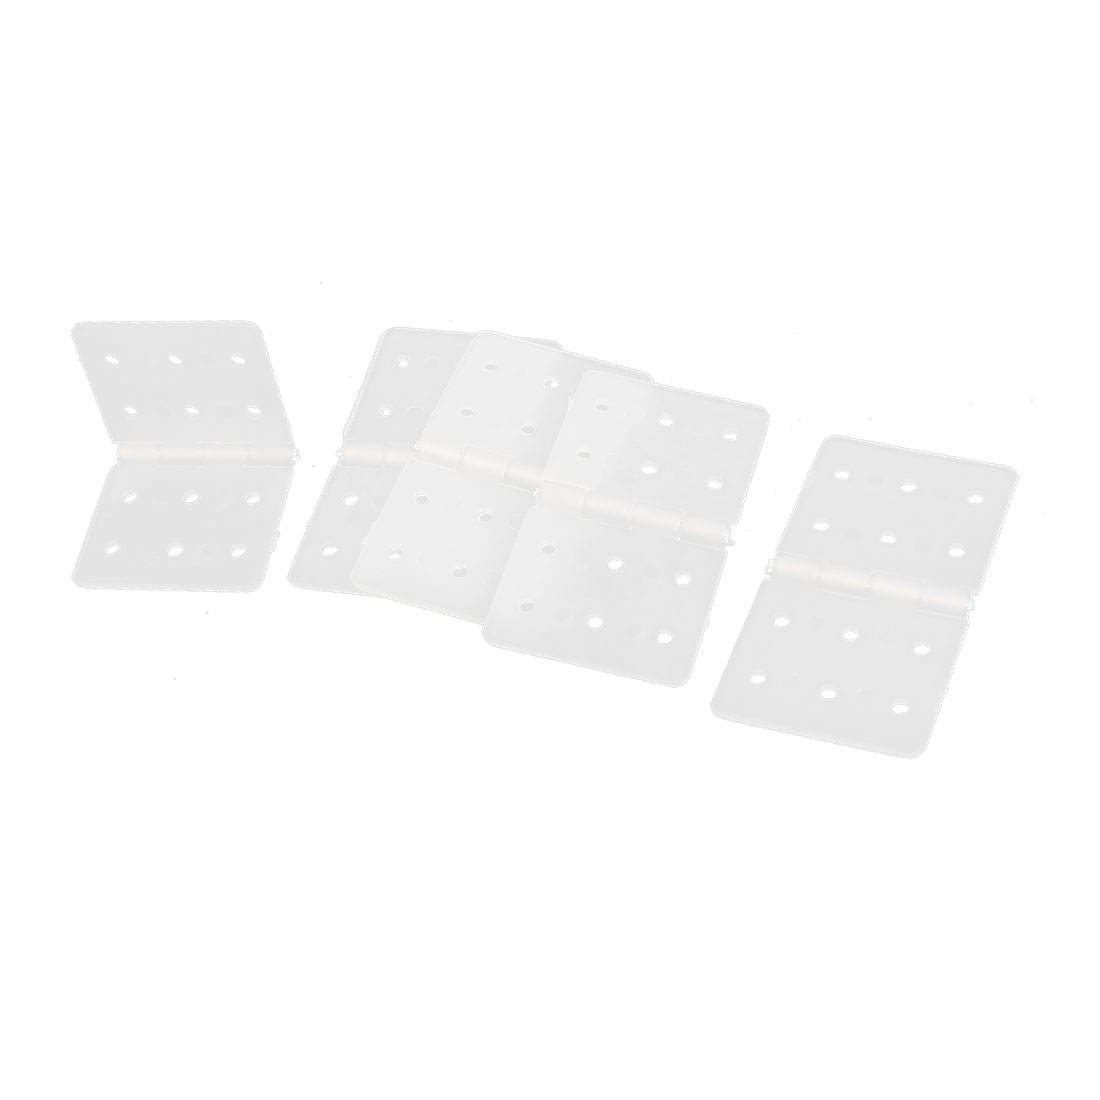 5 Pcs Folding White Nylon Pinned Hinges Parts 36mm x 20mm for RC Plane